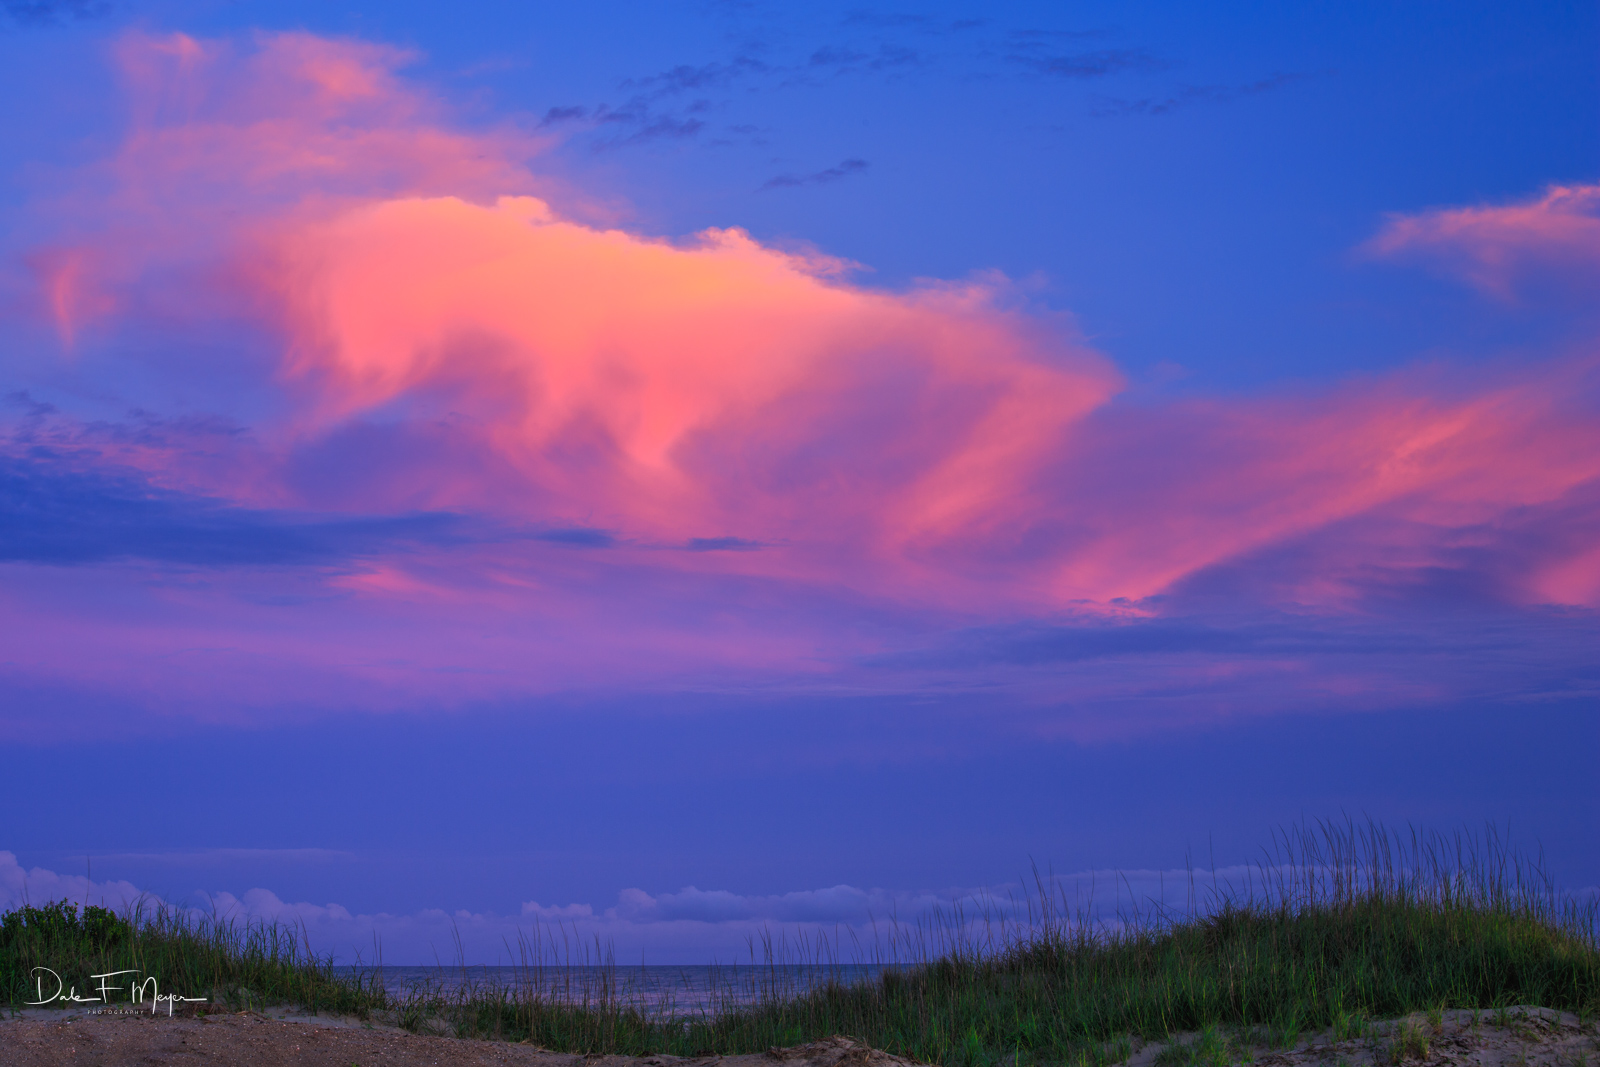 Cape Hateras Seashore,Outer Banks NC,Sunlit Cloud over Ocean, photo